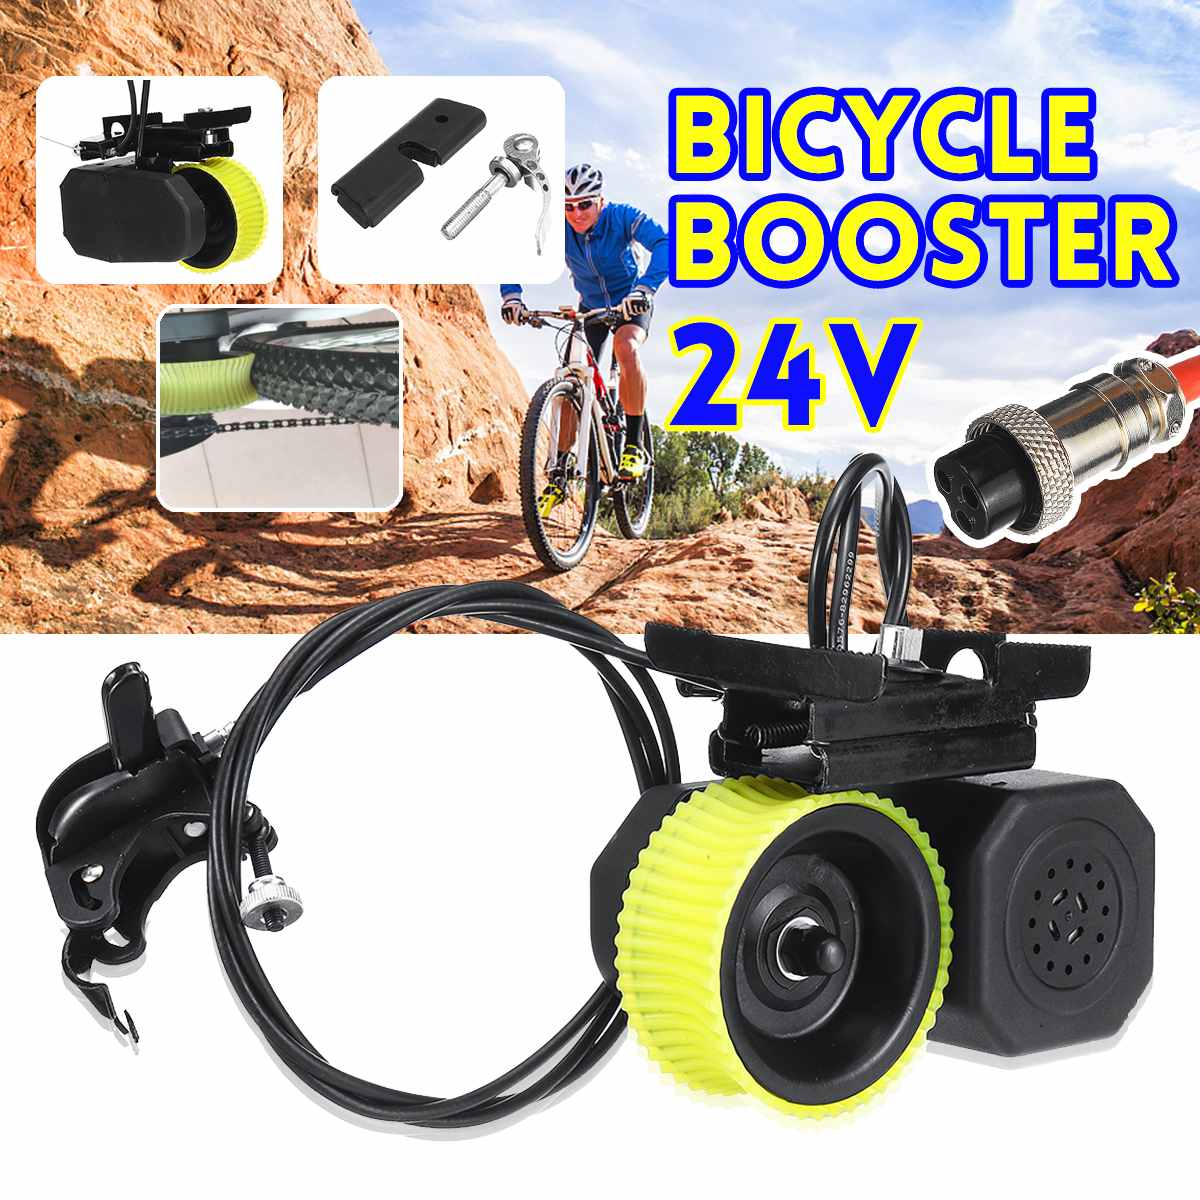 24V Bicycle Bike Booster 160*120*80mm Durable For E-Bike Electric Mountain Bike Bicycle Cycling Accessories New Arrival 2019